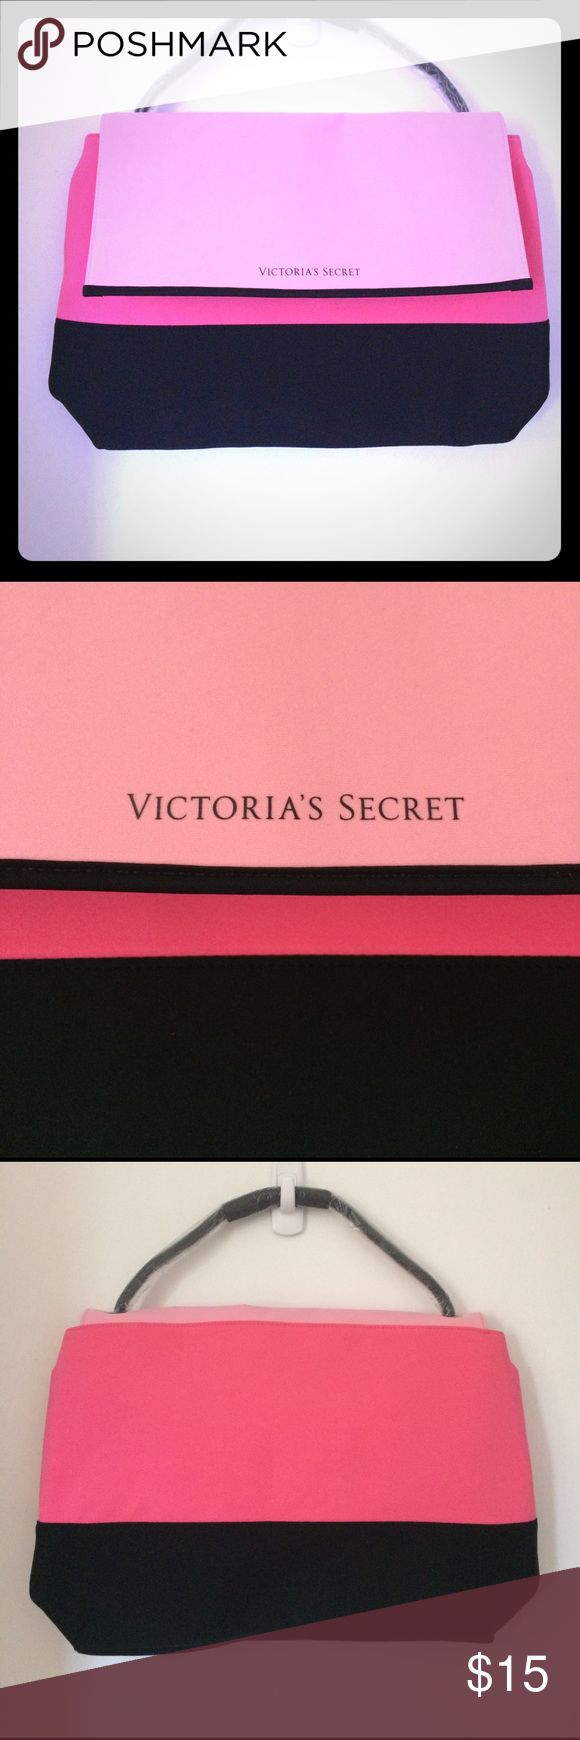 Victoria's Secret insulated bag Insulated tote. Very roomy. Colors that pop. Adorable. New. Never used in original wrapping. PINK Victoria's Secret Bags Totes